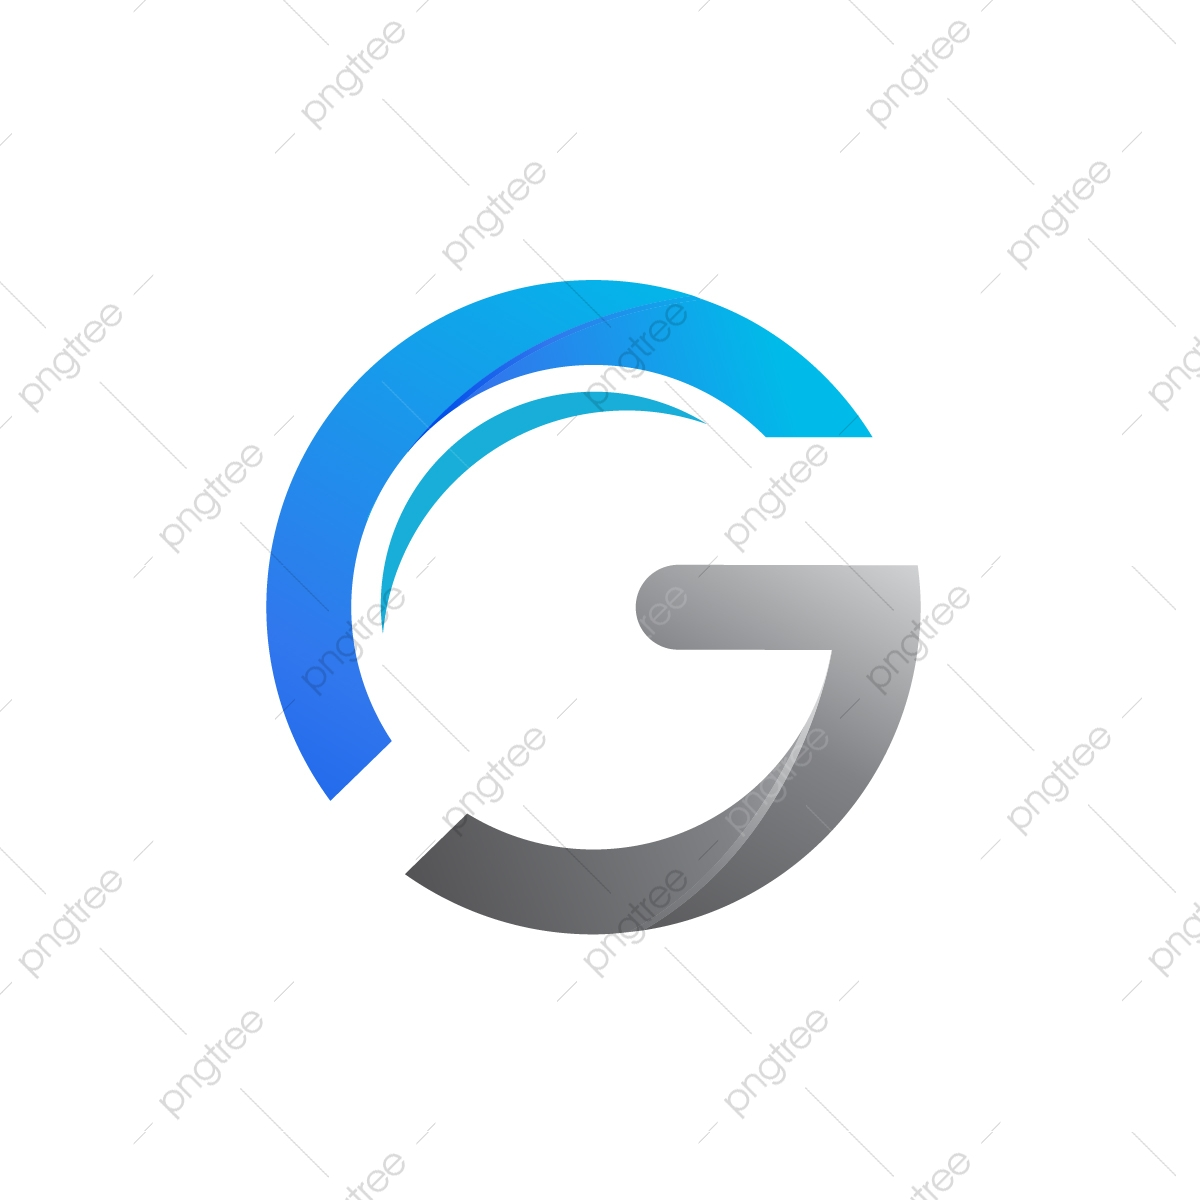 g logo png images vector and psd files free download on pngtree https pngtree com freepng letter g logo design inspiration 5067297 html